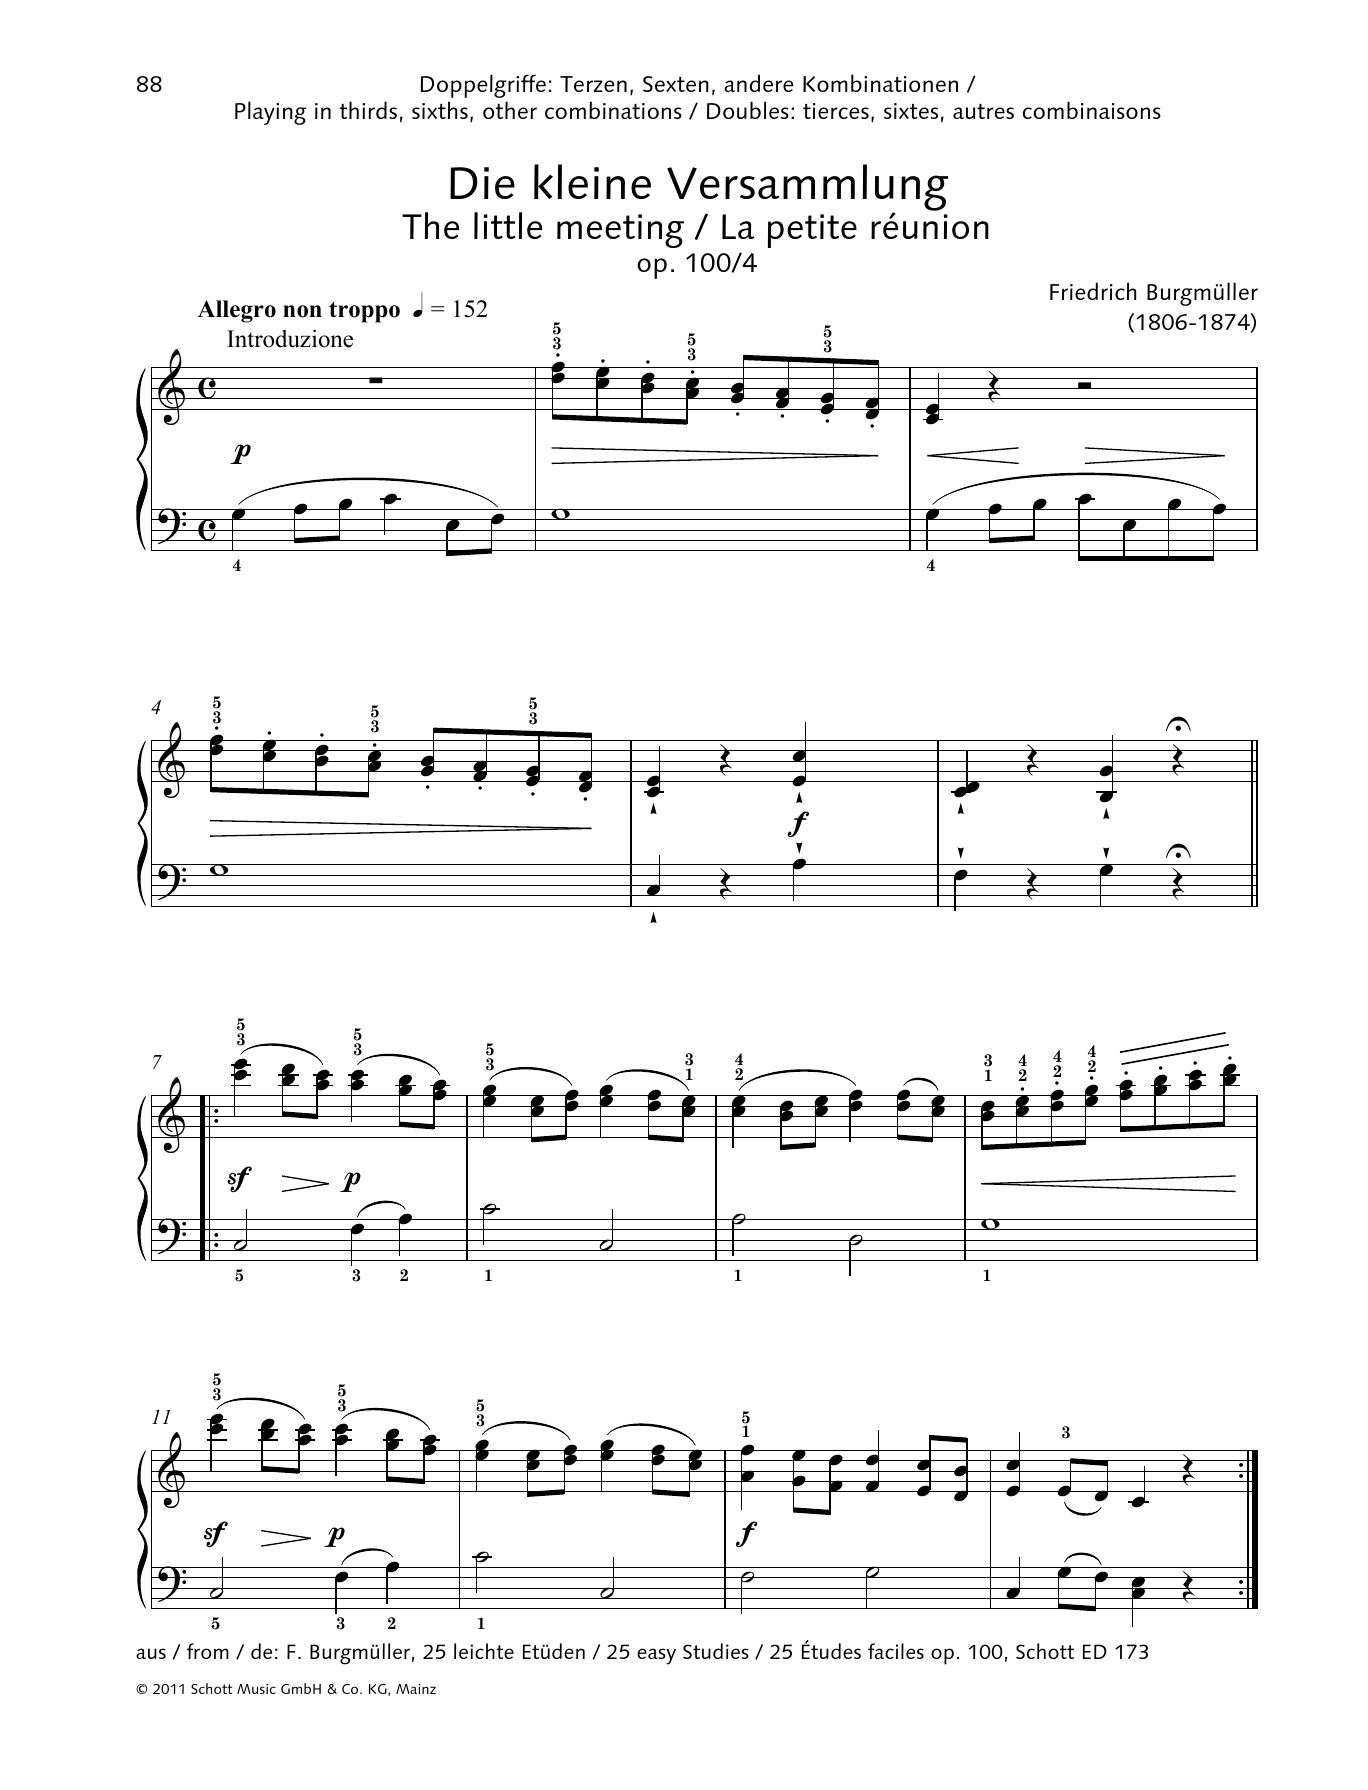 The Little Meeting Sheet Music